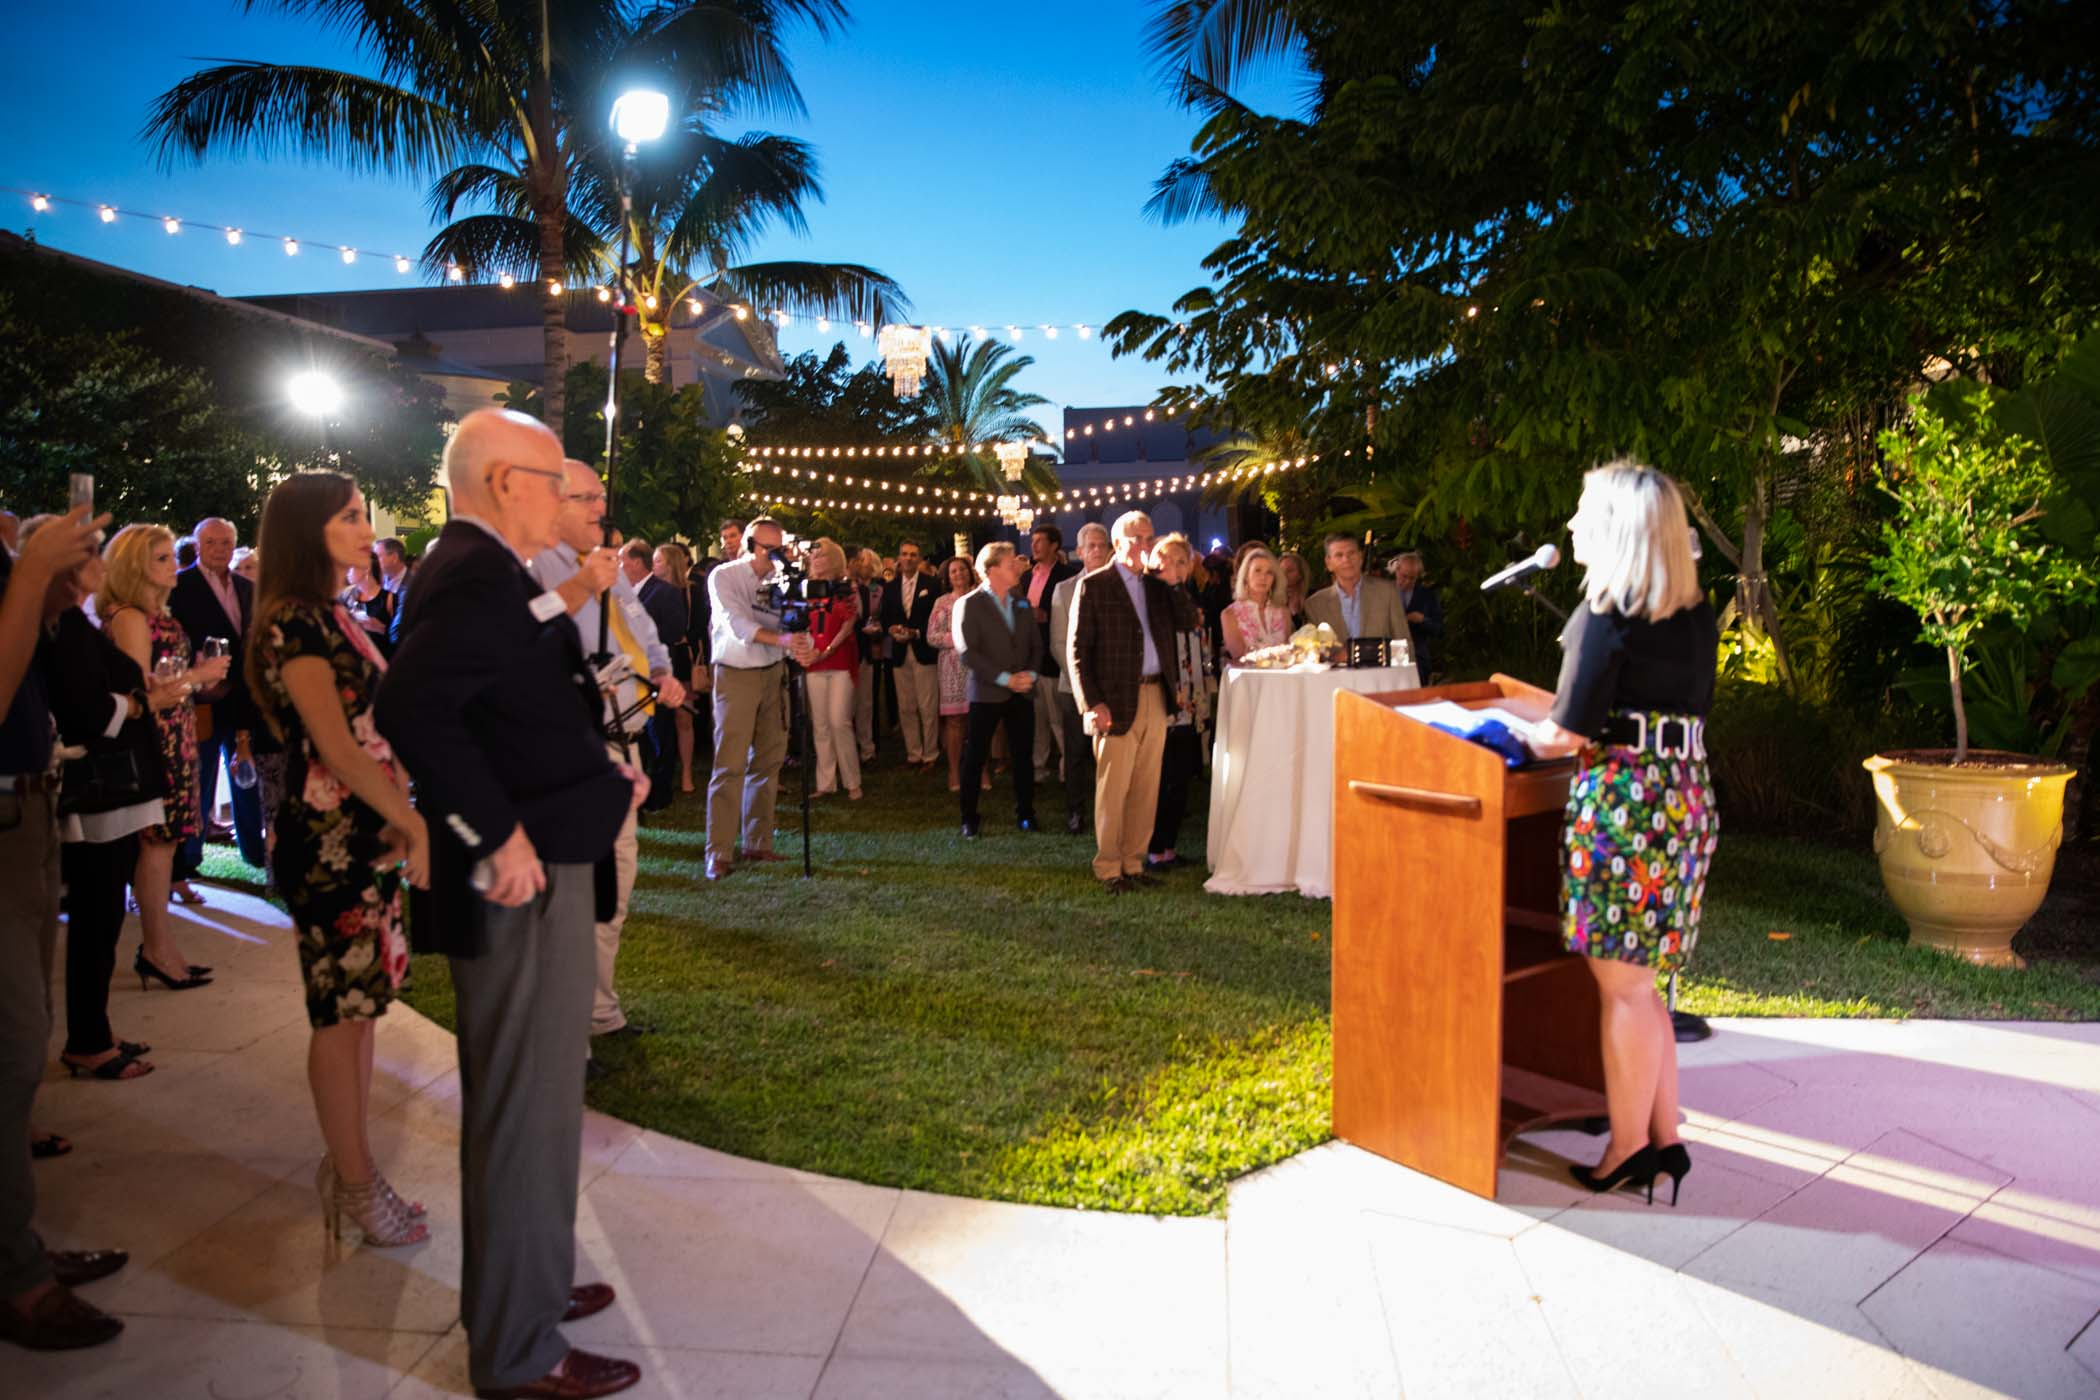 The 75th Anniversary of the Palm Beach Civic Association at the Royal Ponciana in Palm Beach Florida November 26, 2018 with Live Painting by Lydia Marie Elizabeth in watercolor 4.jpg